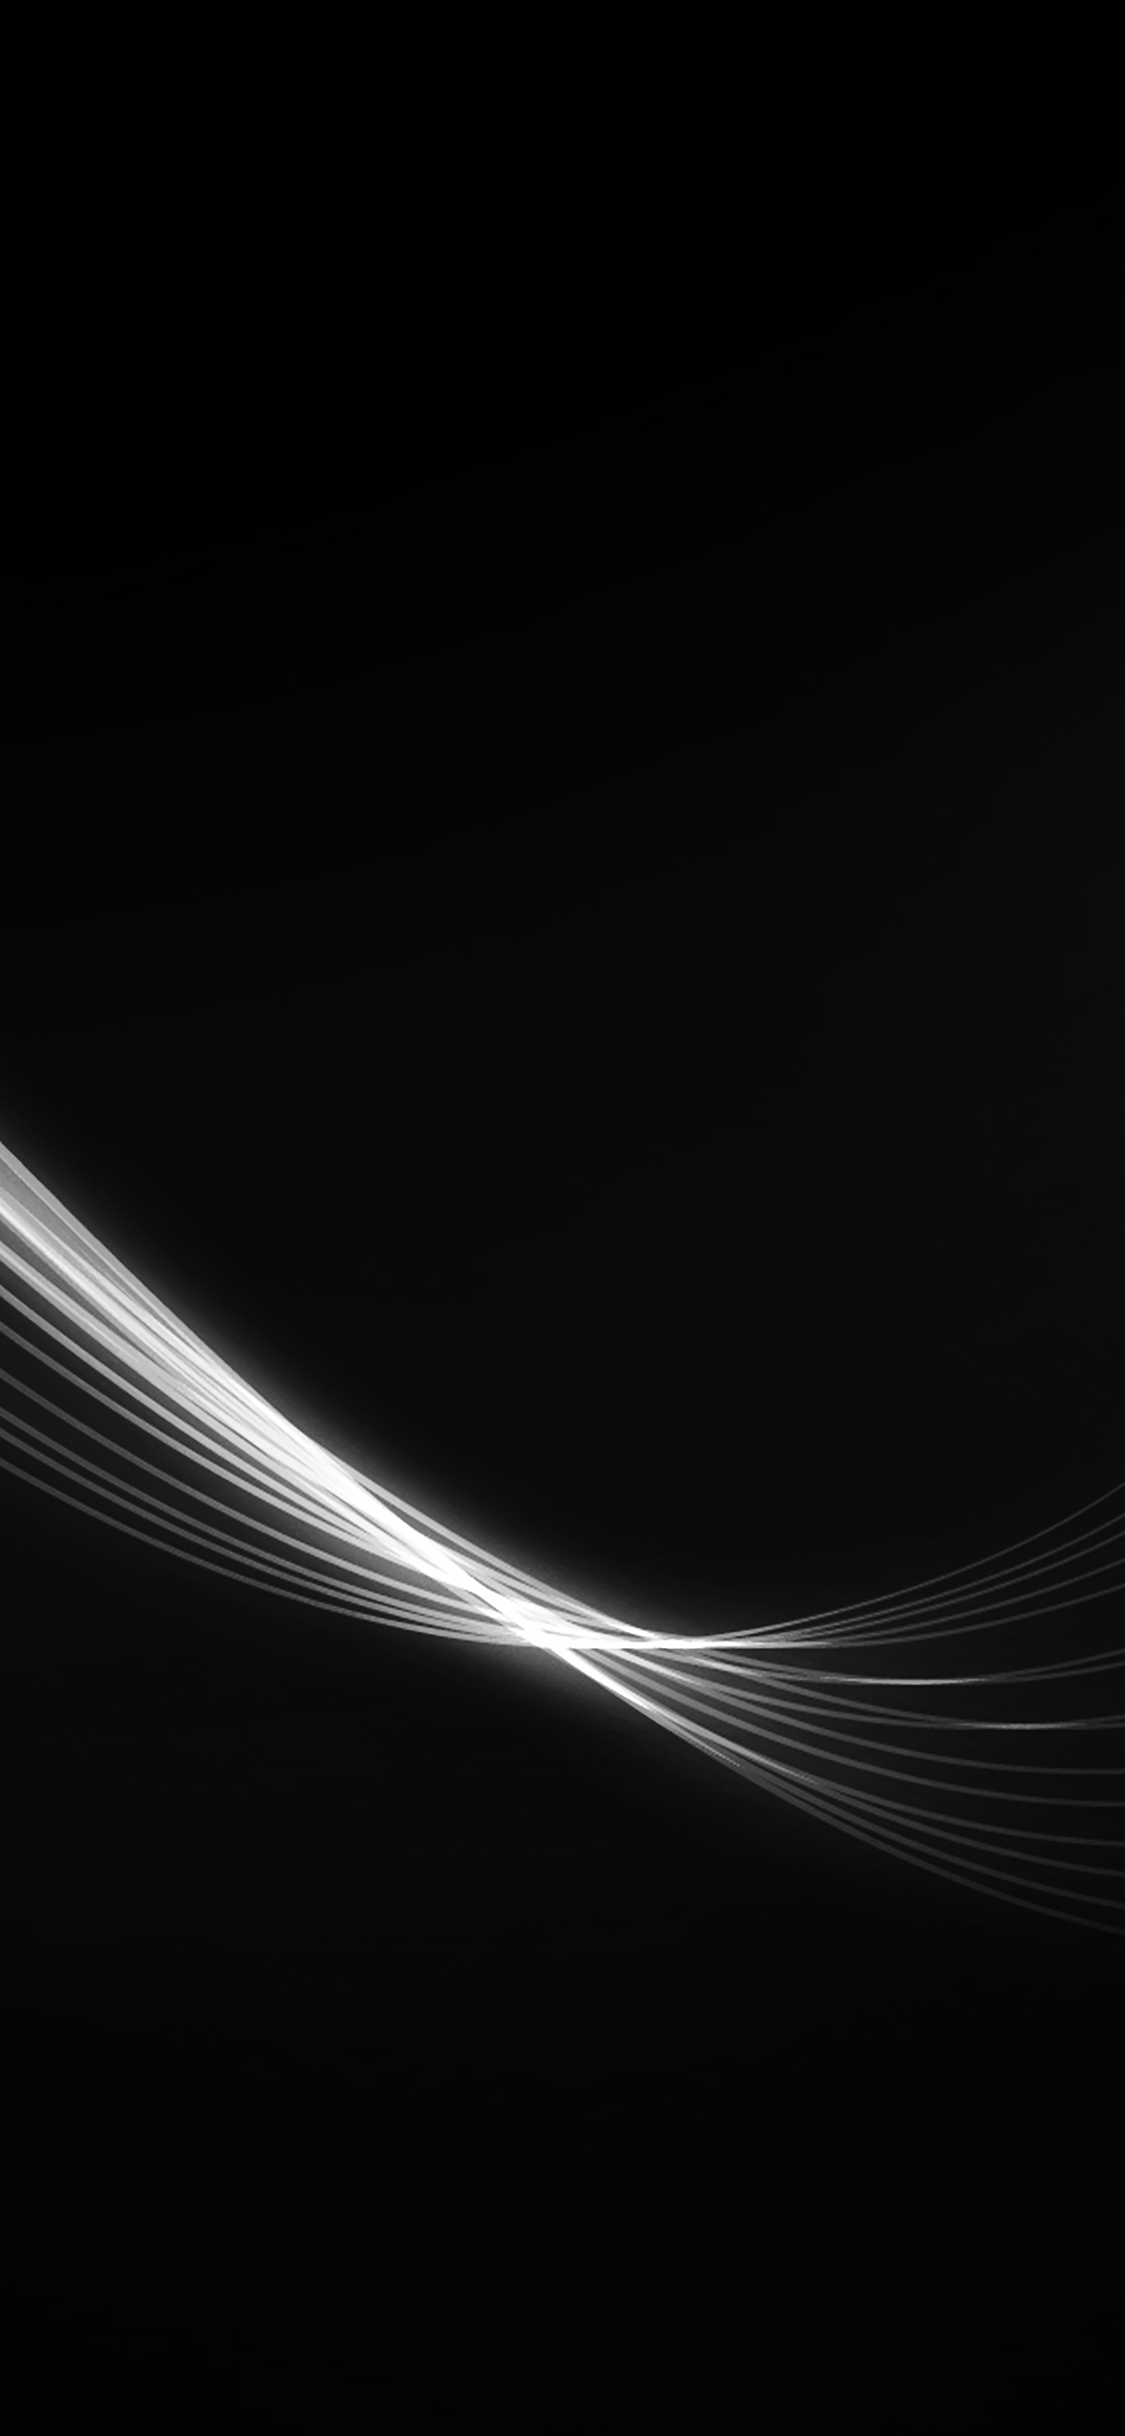 iPhoneXpapers.com-Apple-iPhone-wallpaper-vc33-feather-abstract-black-dark-pattern